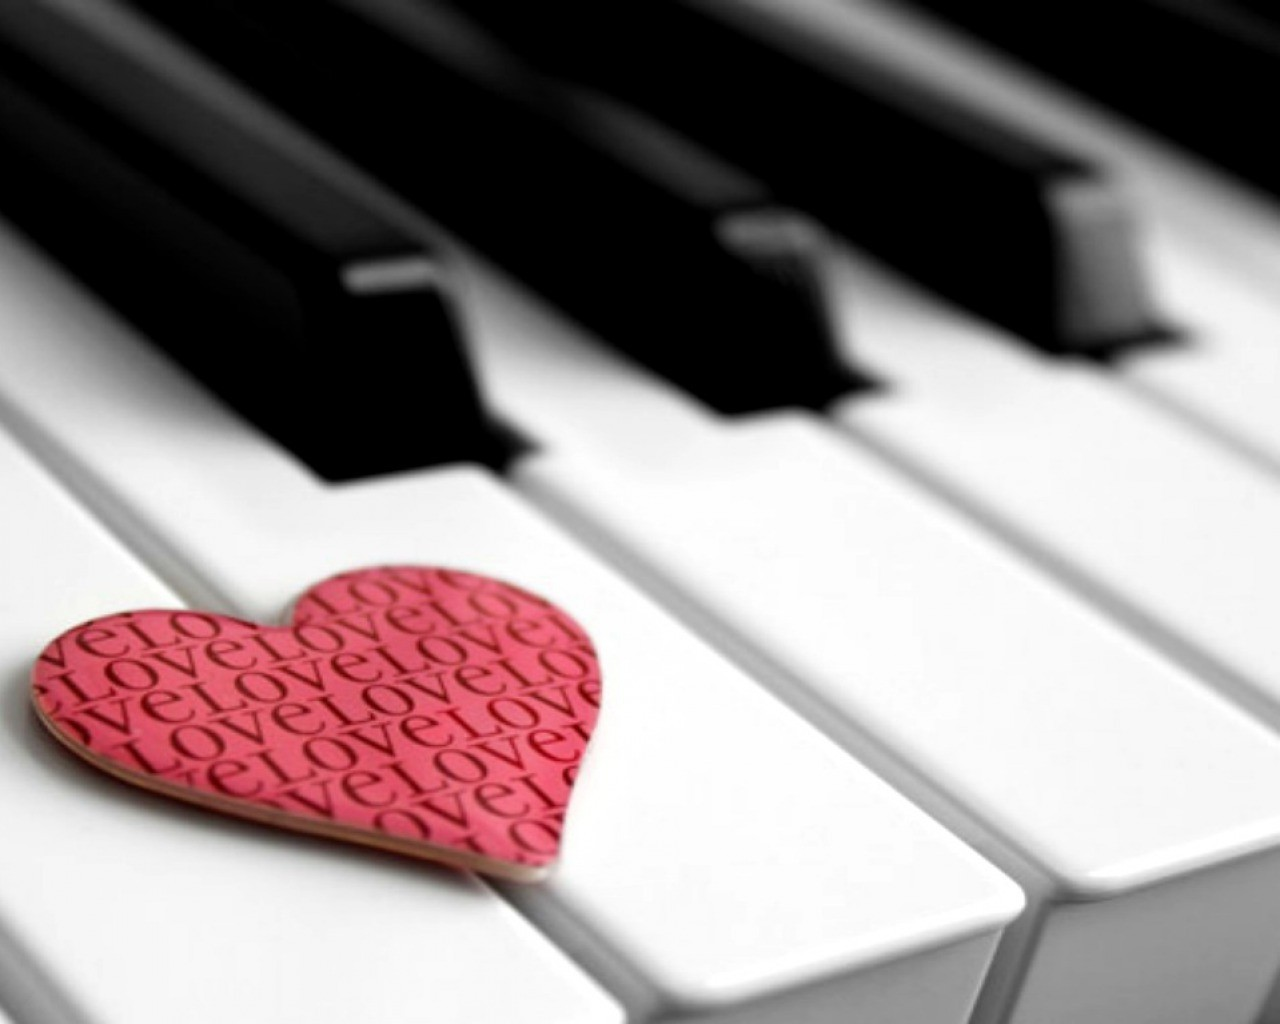 music piano harmony melody mystical inspiration sublime